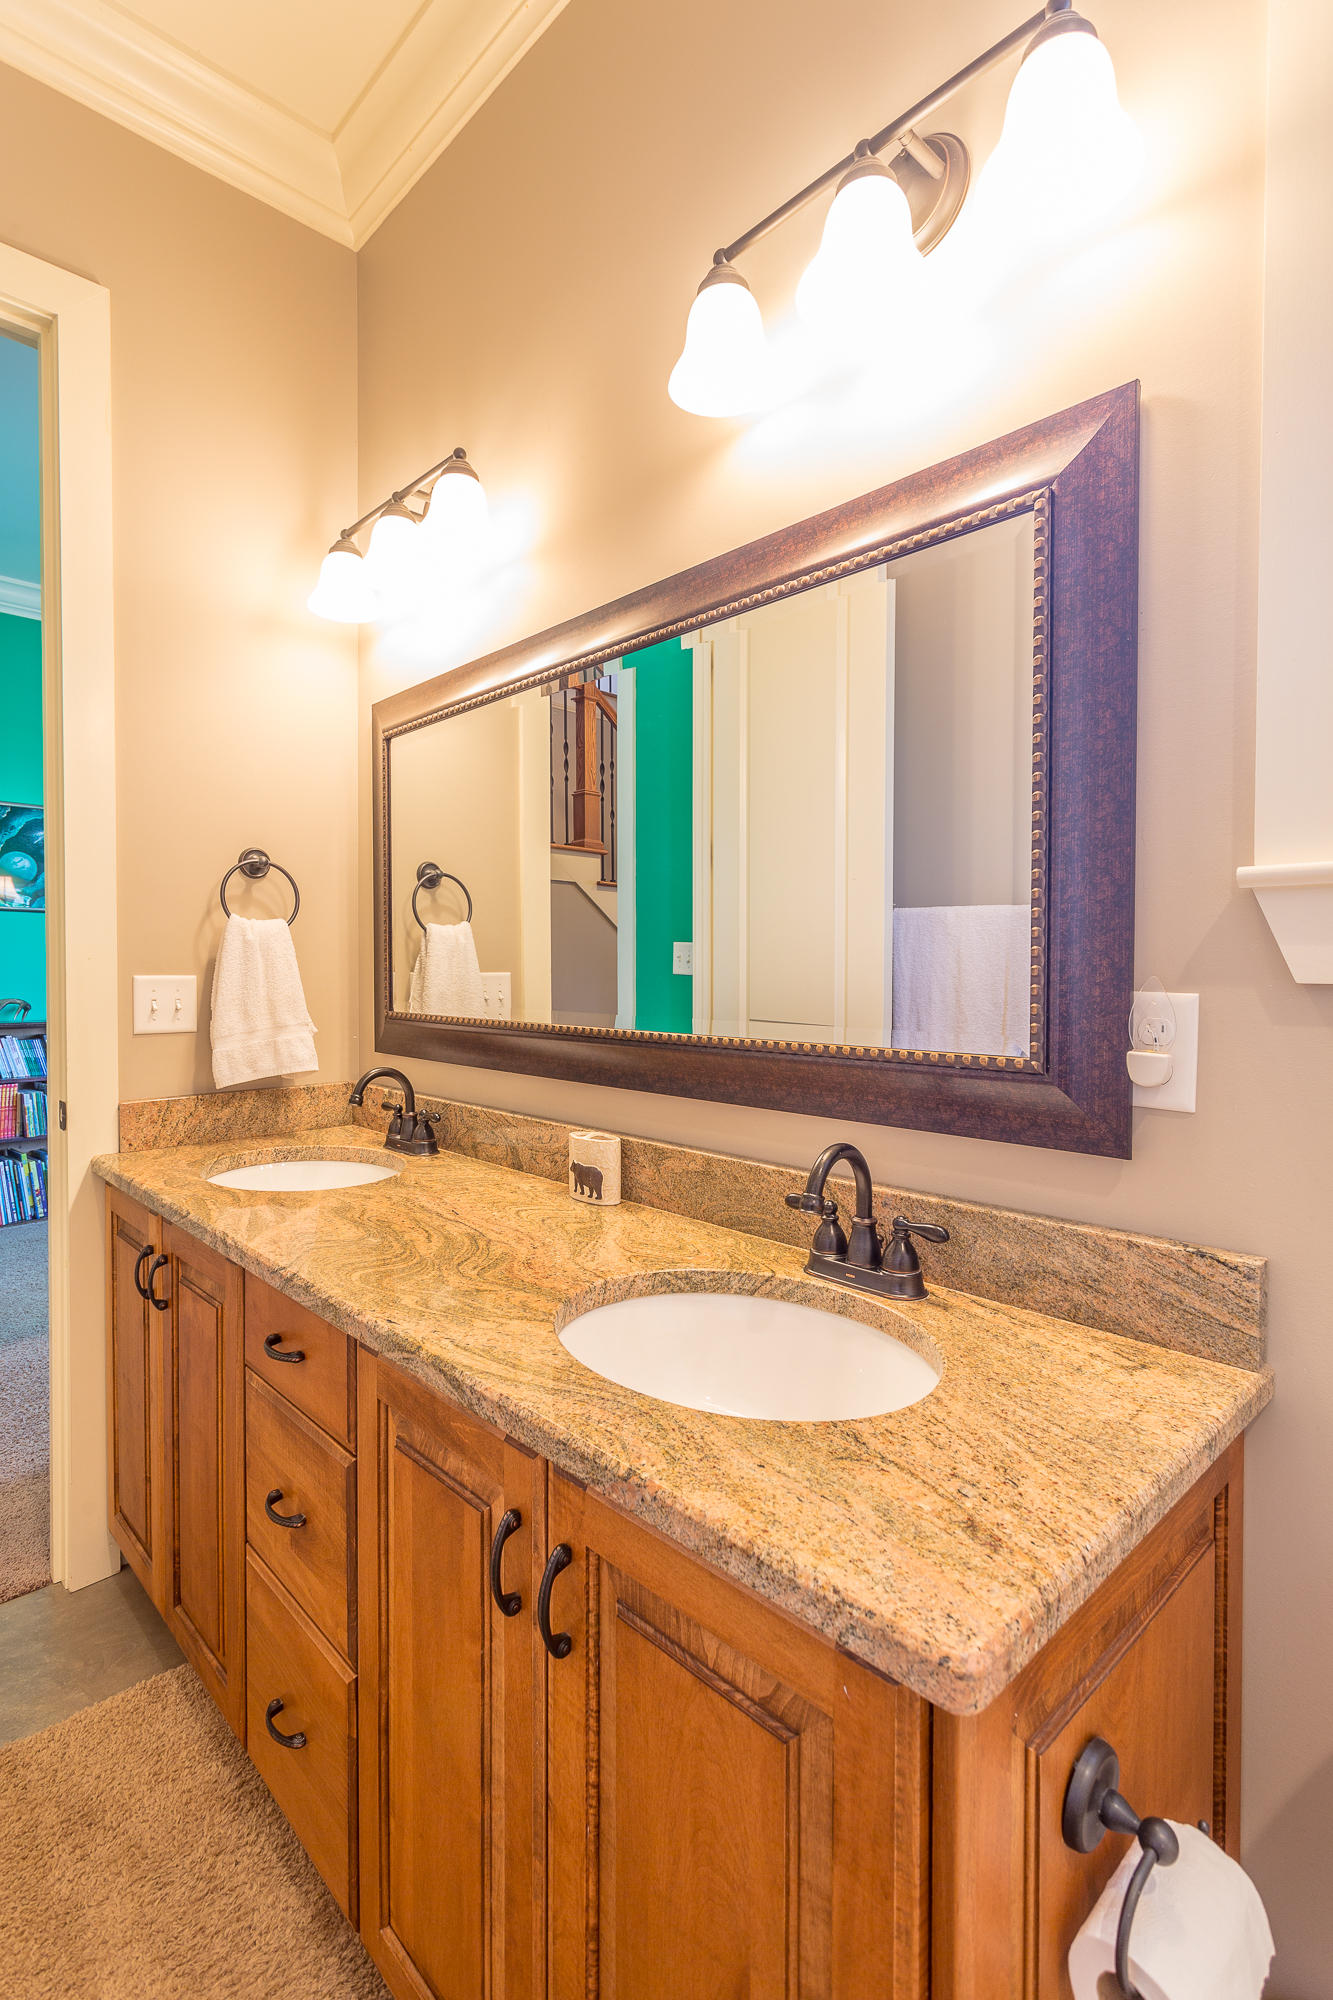 527 Lookout Crest Ln, Lookout Mountain, GA 30750